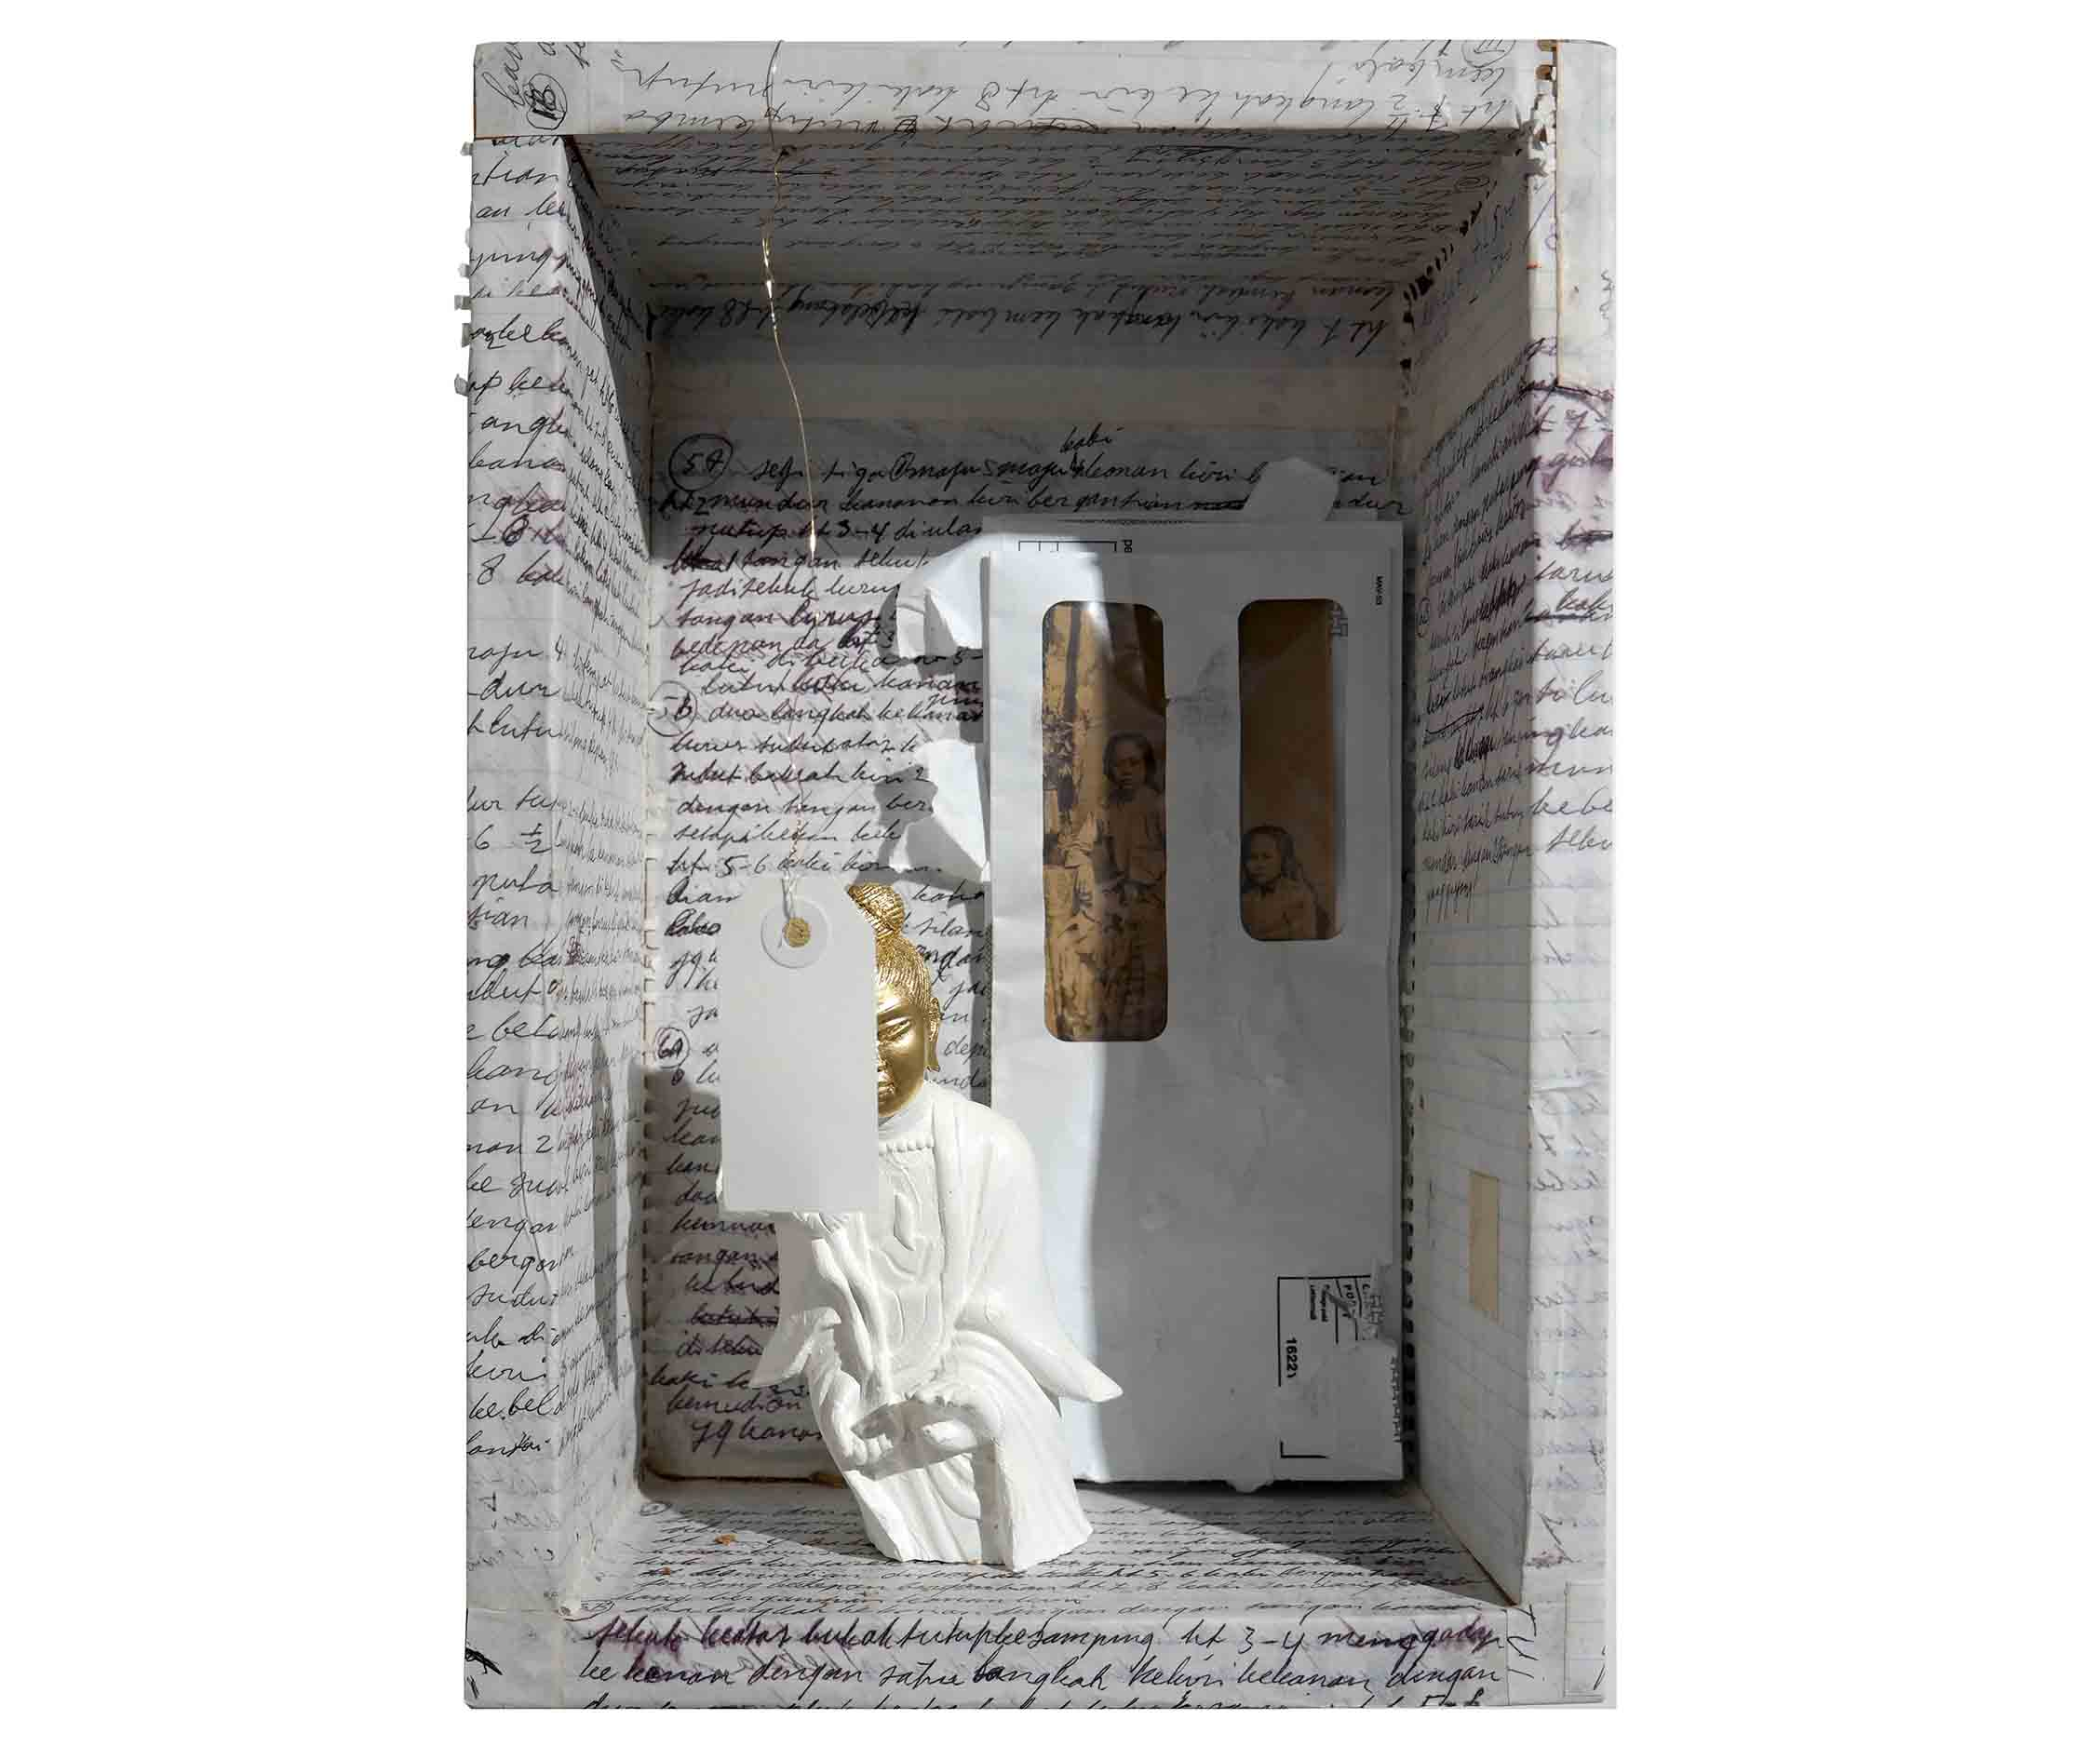 Forgotten Goddess, Variable Size, 2016, Wood Box,Paper, Envelopes, Old Post Card, Wood Statue,Gold Leaf, Acrylic Paint